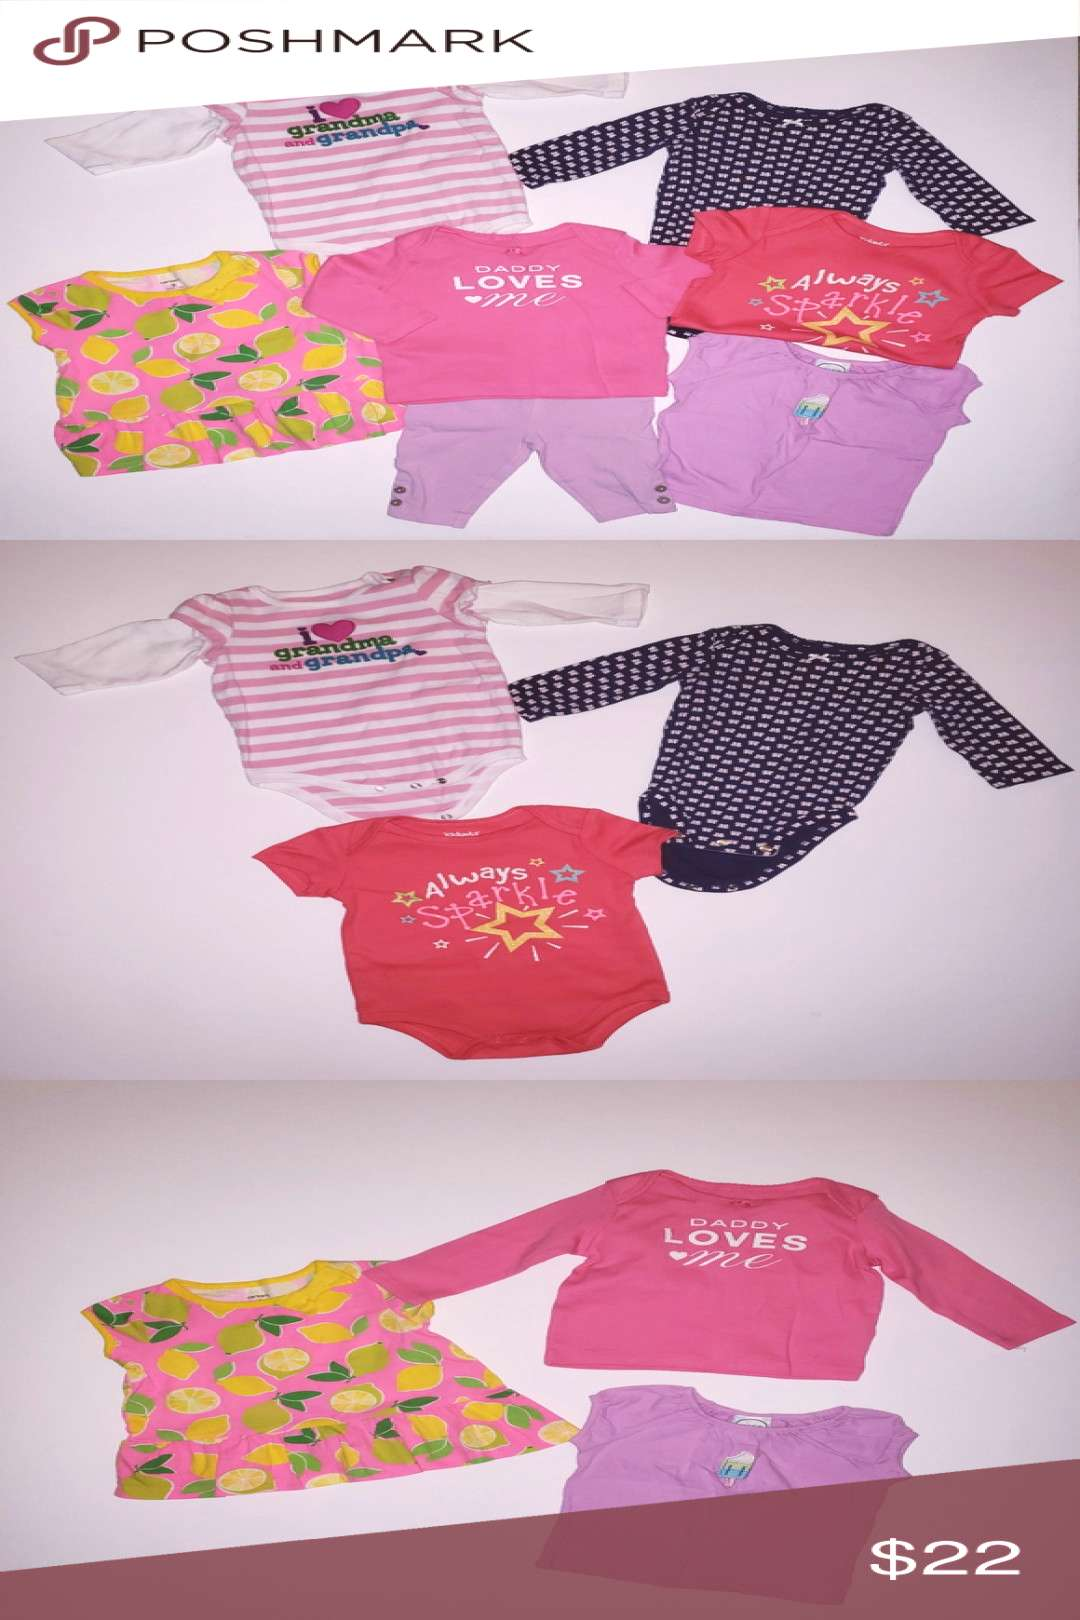 BUNDLE OF BABY CLOTHES! GIRLS Exactly as shown in pics Excellent gently used condition 2 onesies aamp